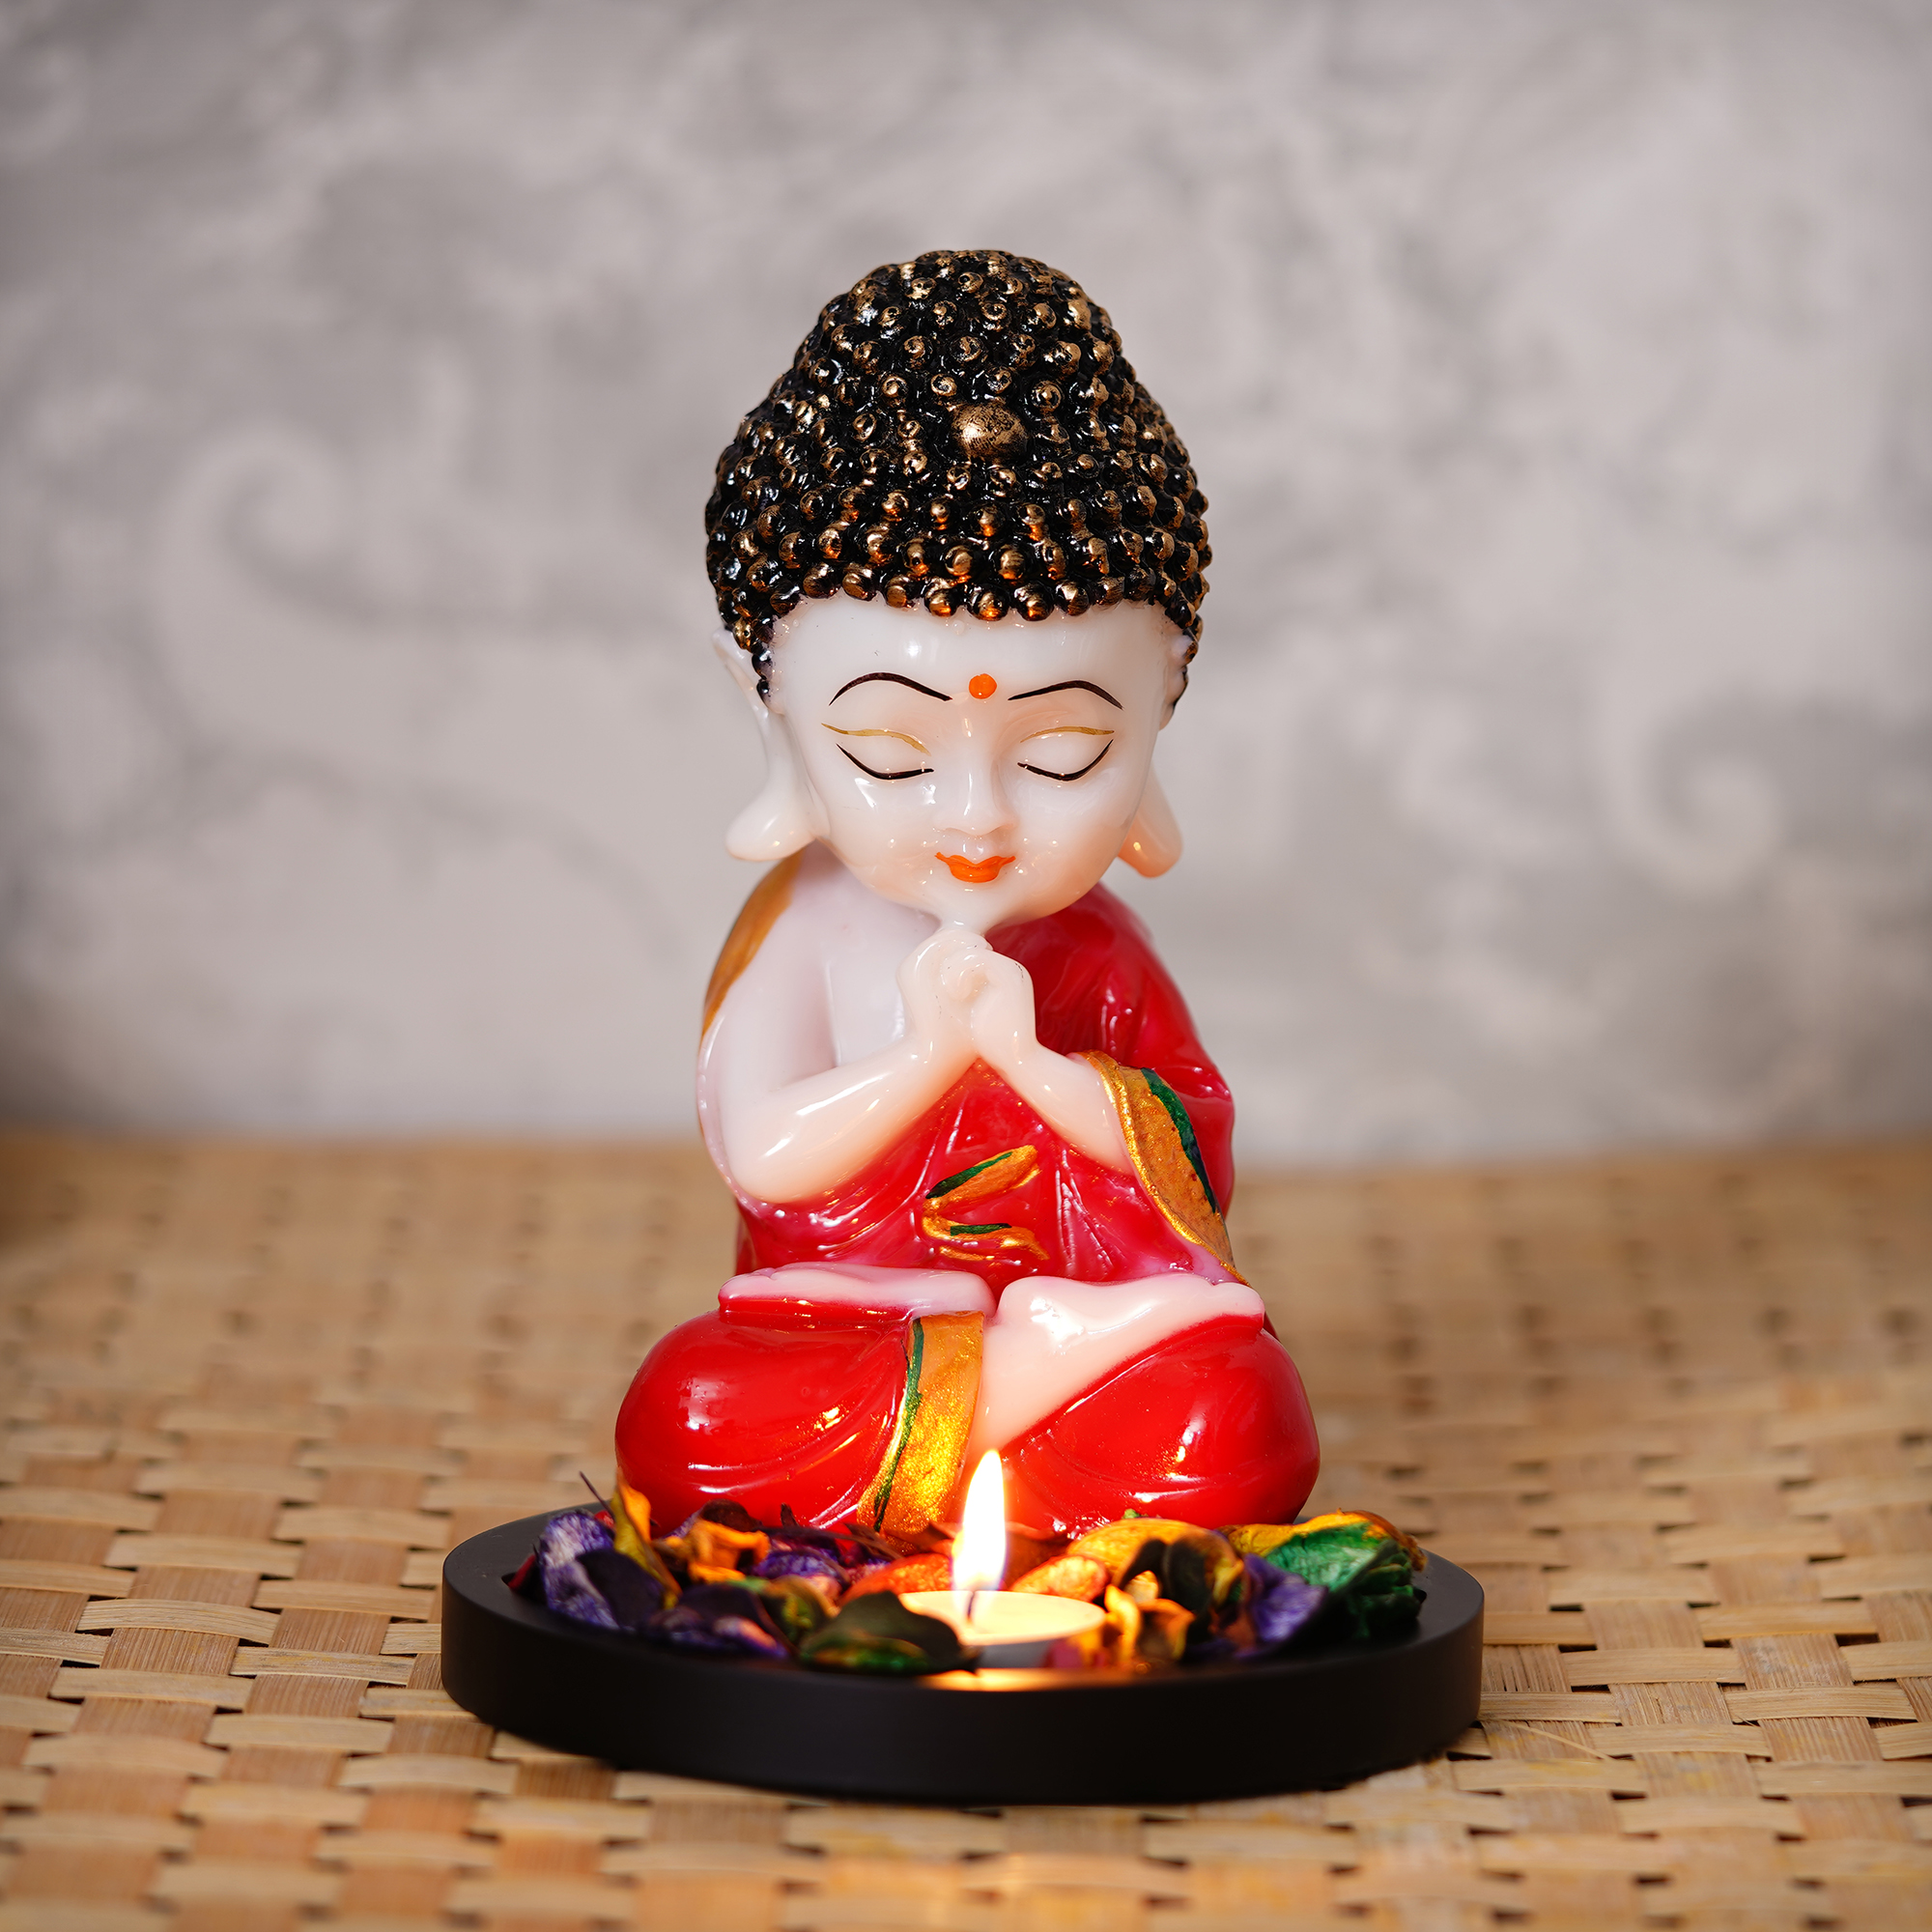 Praying Red Monk Buddha with Wooden Base, Fragranced Petals and Tealight Indian Home Decor